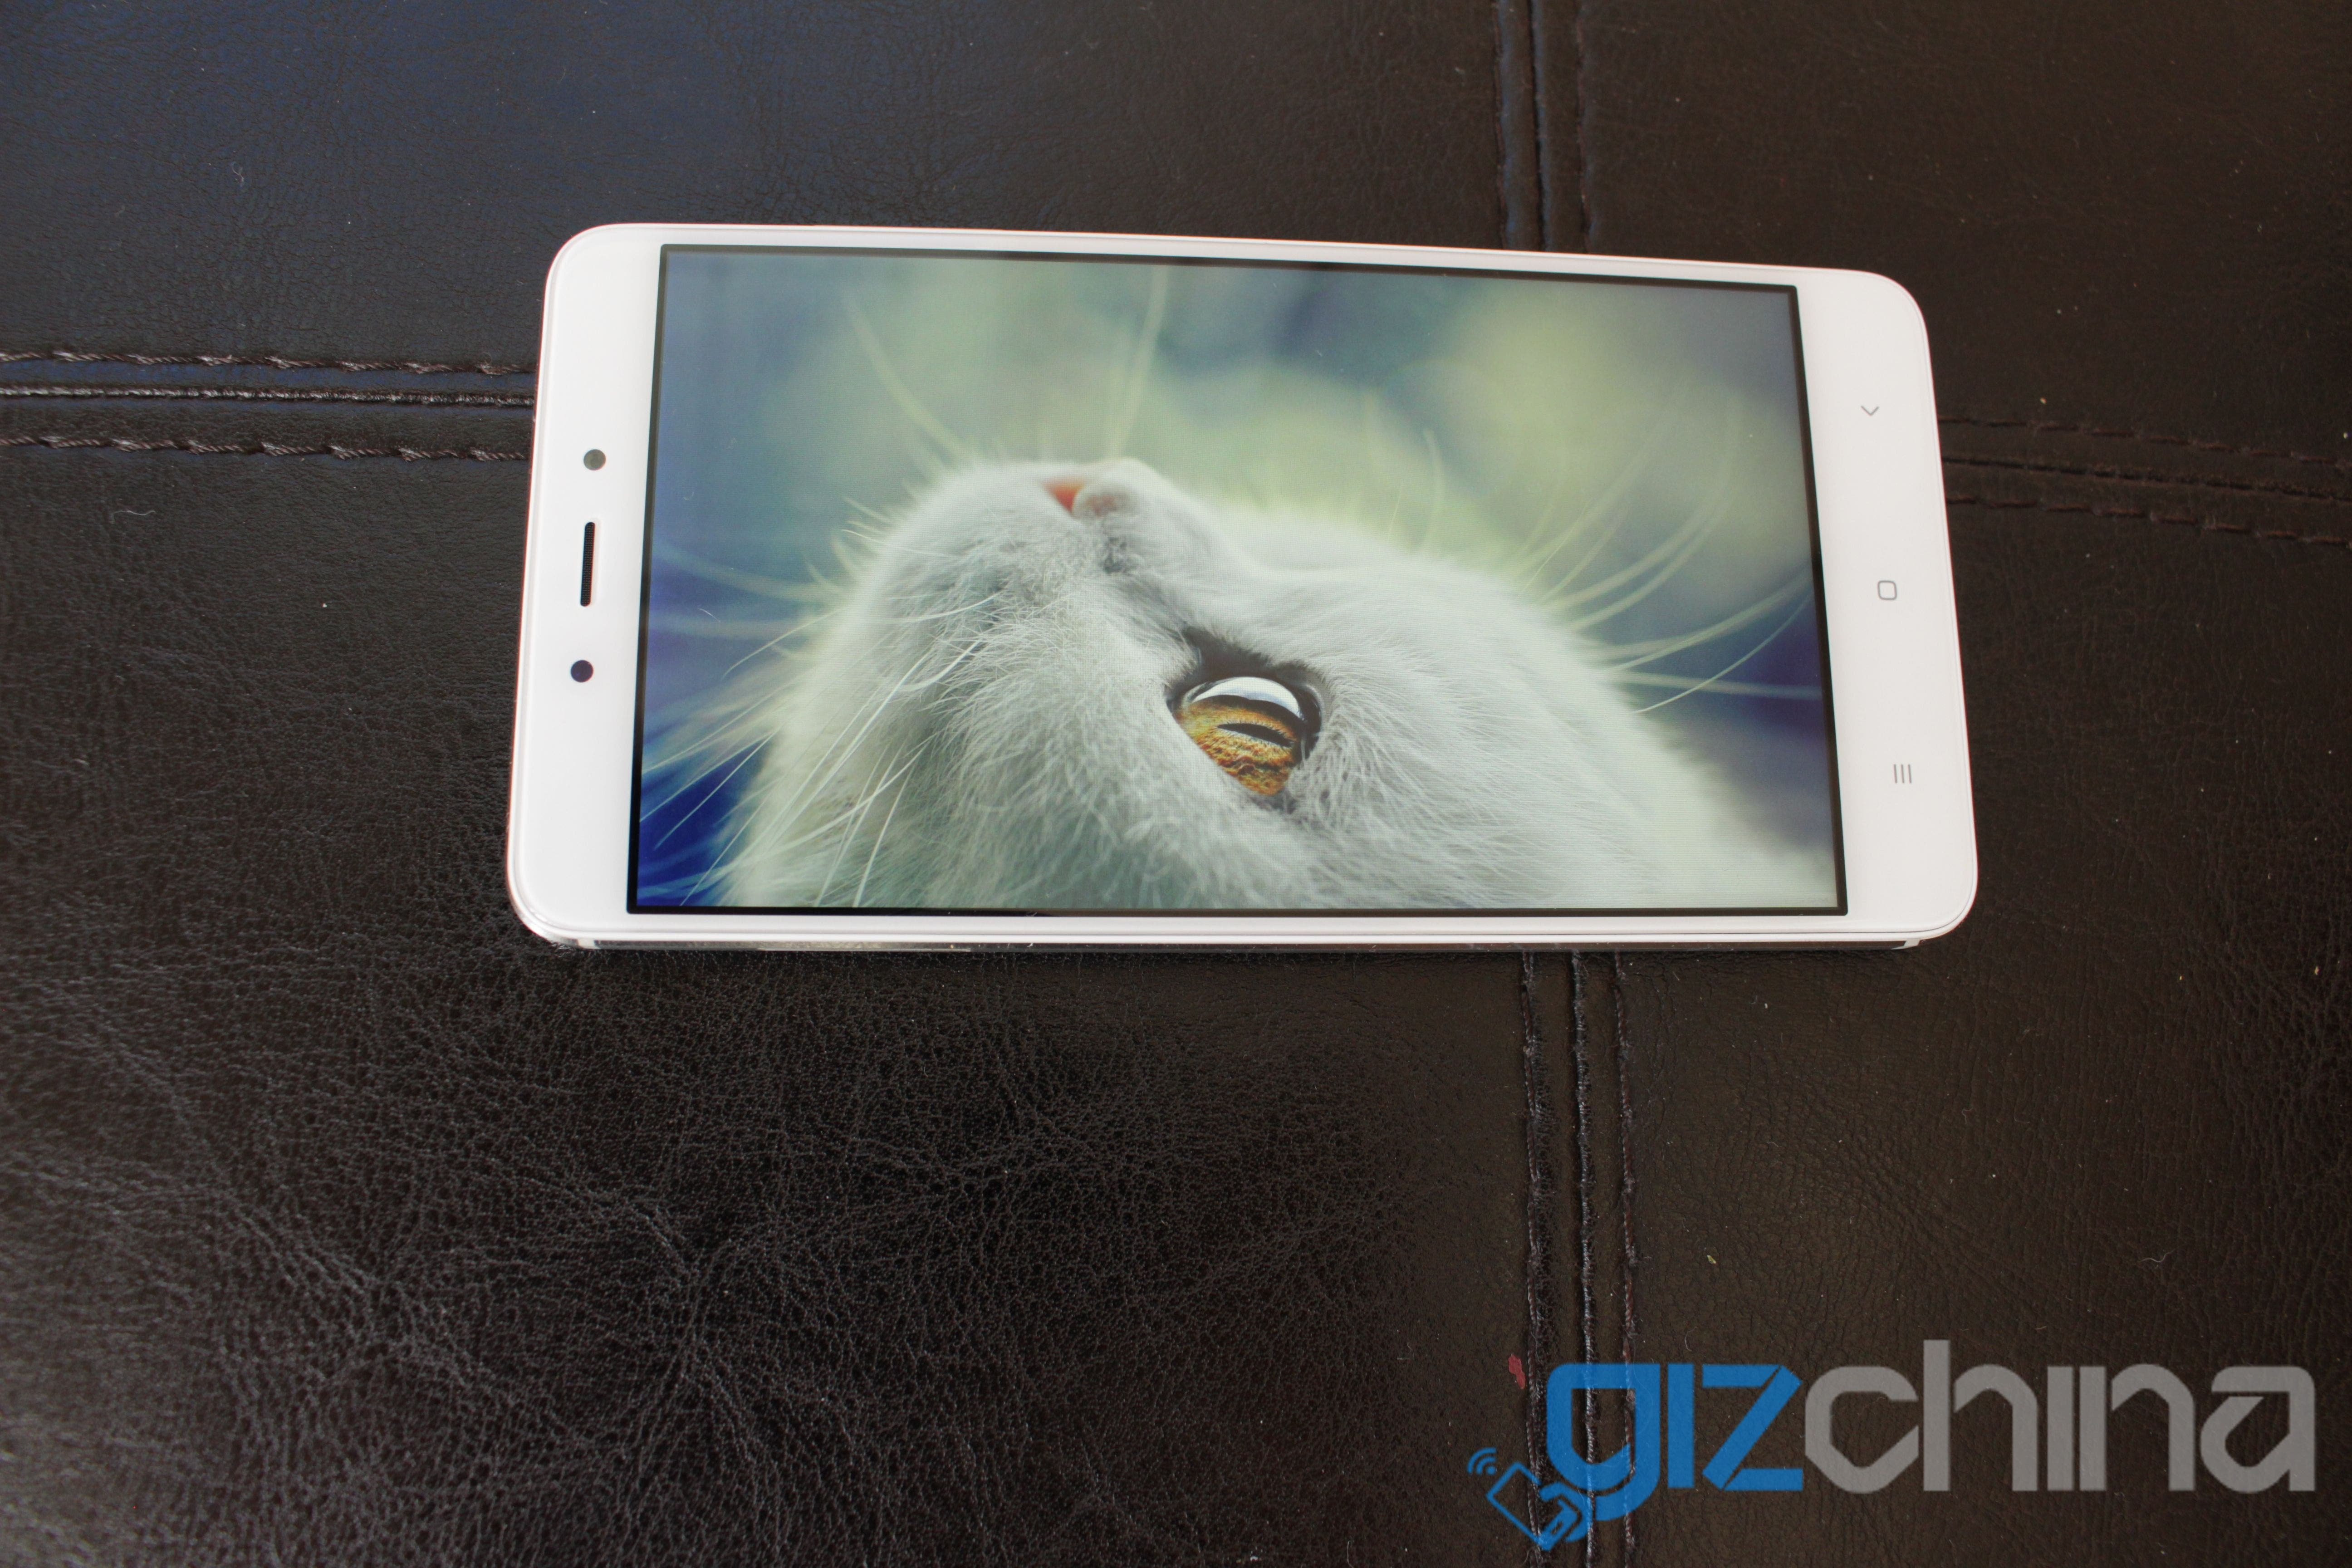 Xiaomi Redmi Note 4 Review Androidguru Eu: Xiaomi Redmi Note 4 Review: The Best Redmi Note Yet